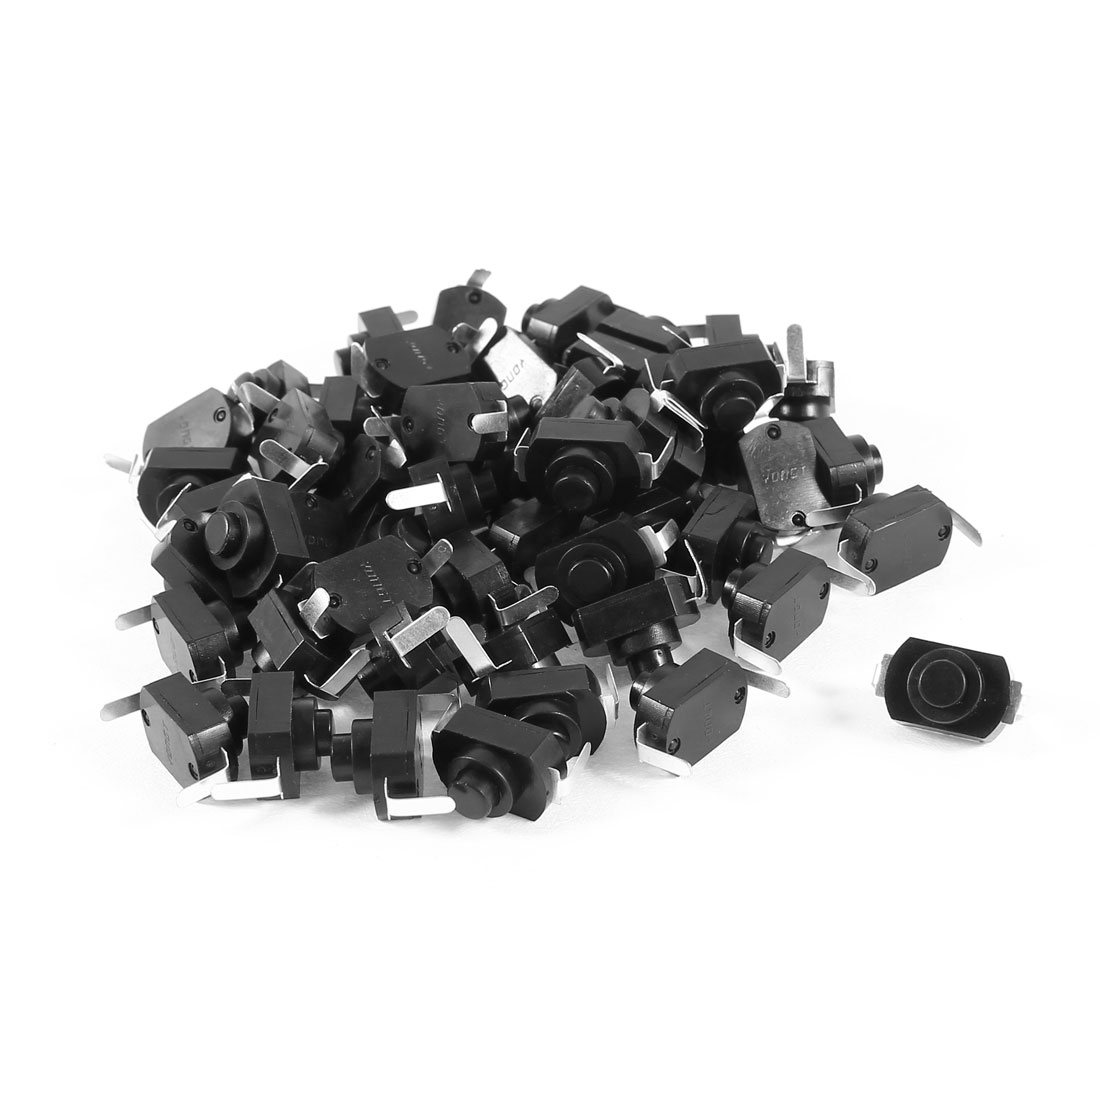 50 Pcs AC 125V 1.5A Vertical Latching Torch Push Button Switch